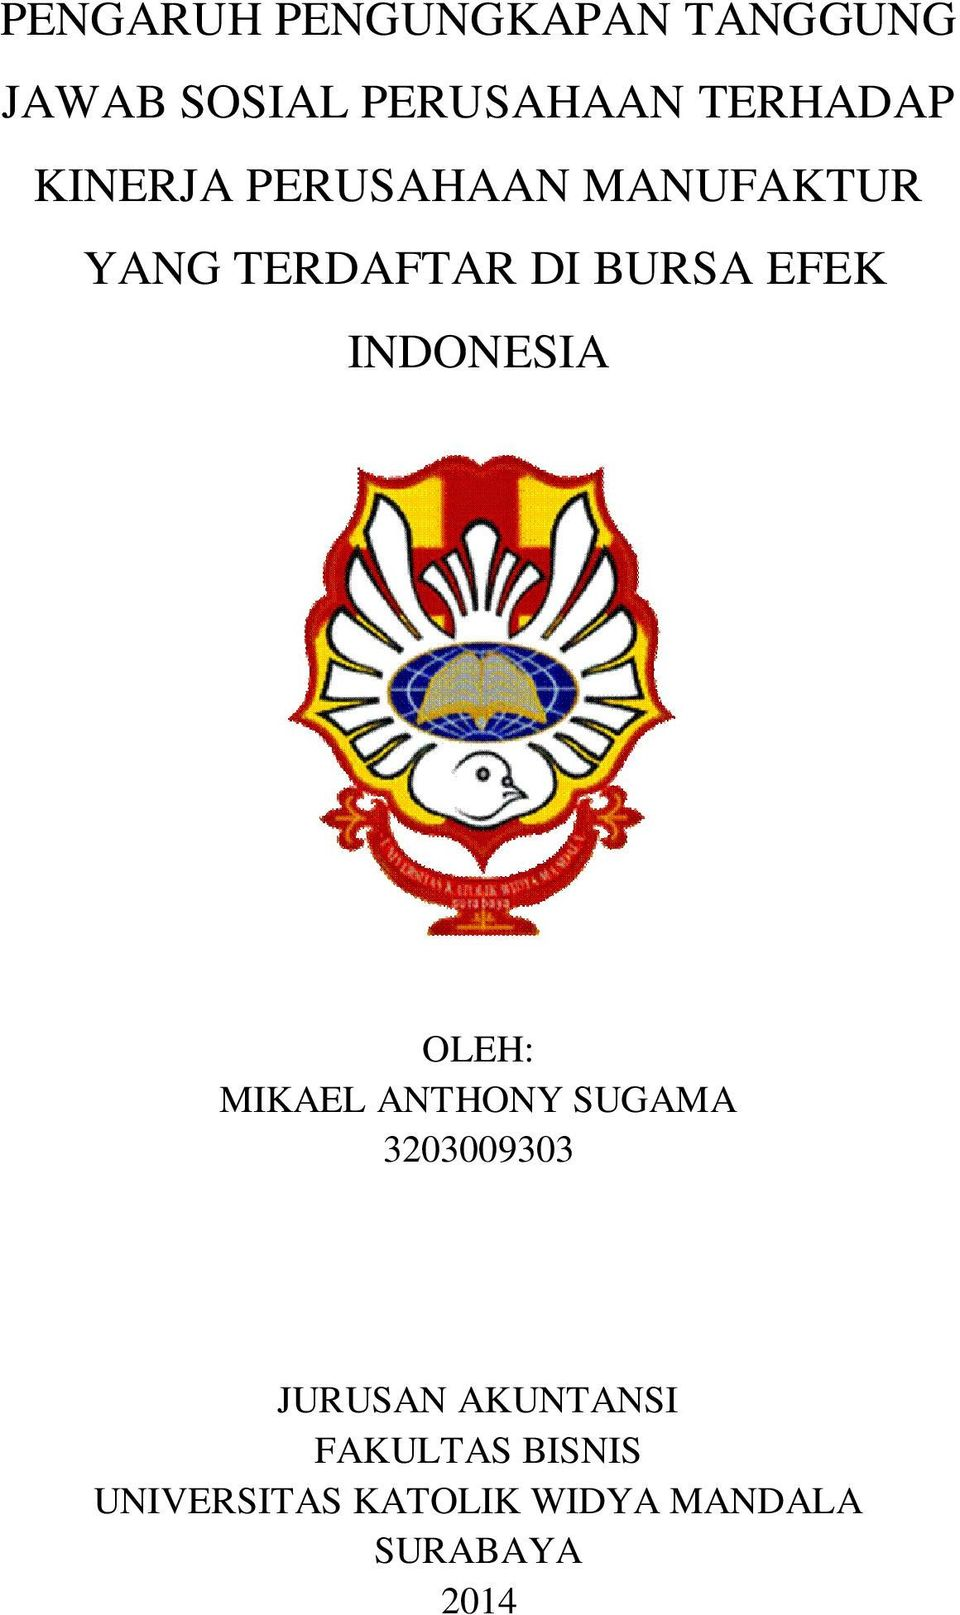 INDONESIA OLEH: MIKAEL ANTHONY SUGAMA 3203009303 JURUSAN